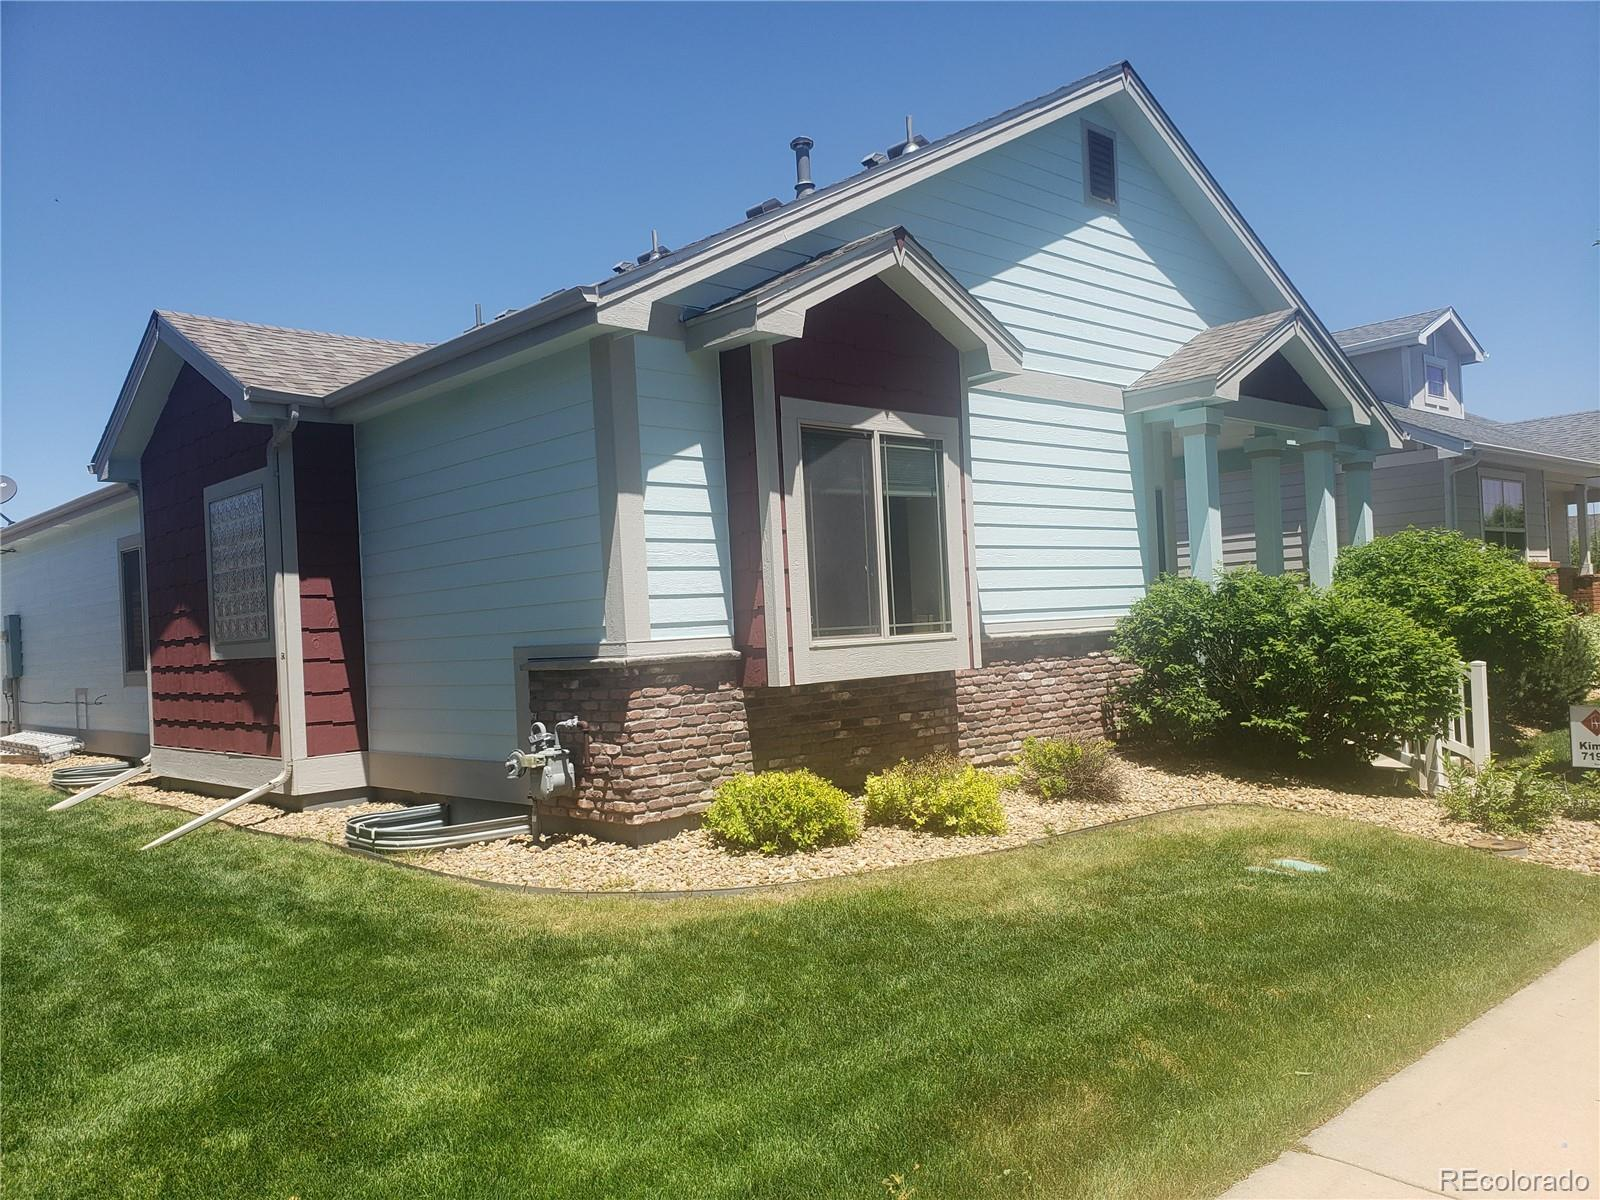 6533 18TH St Rd, Greeley, CO 80634 - #: 5871585